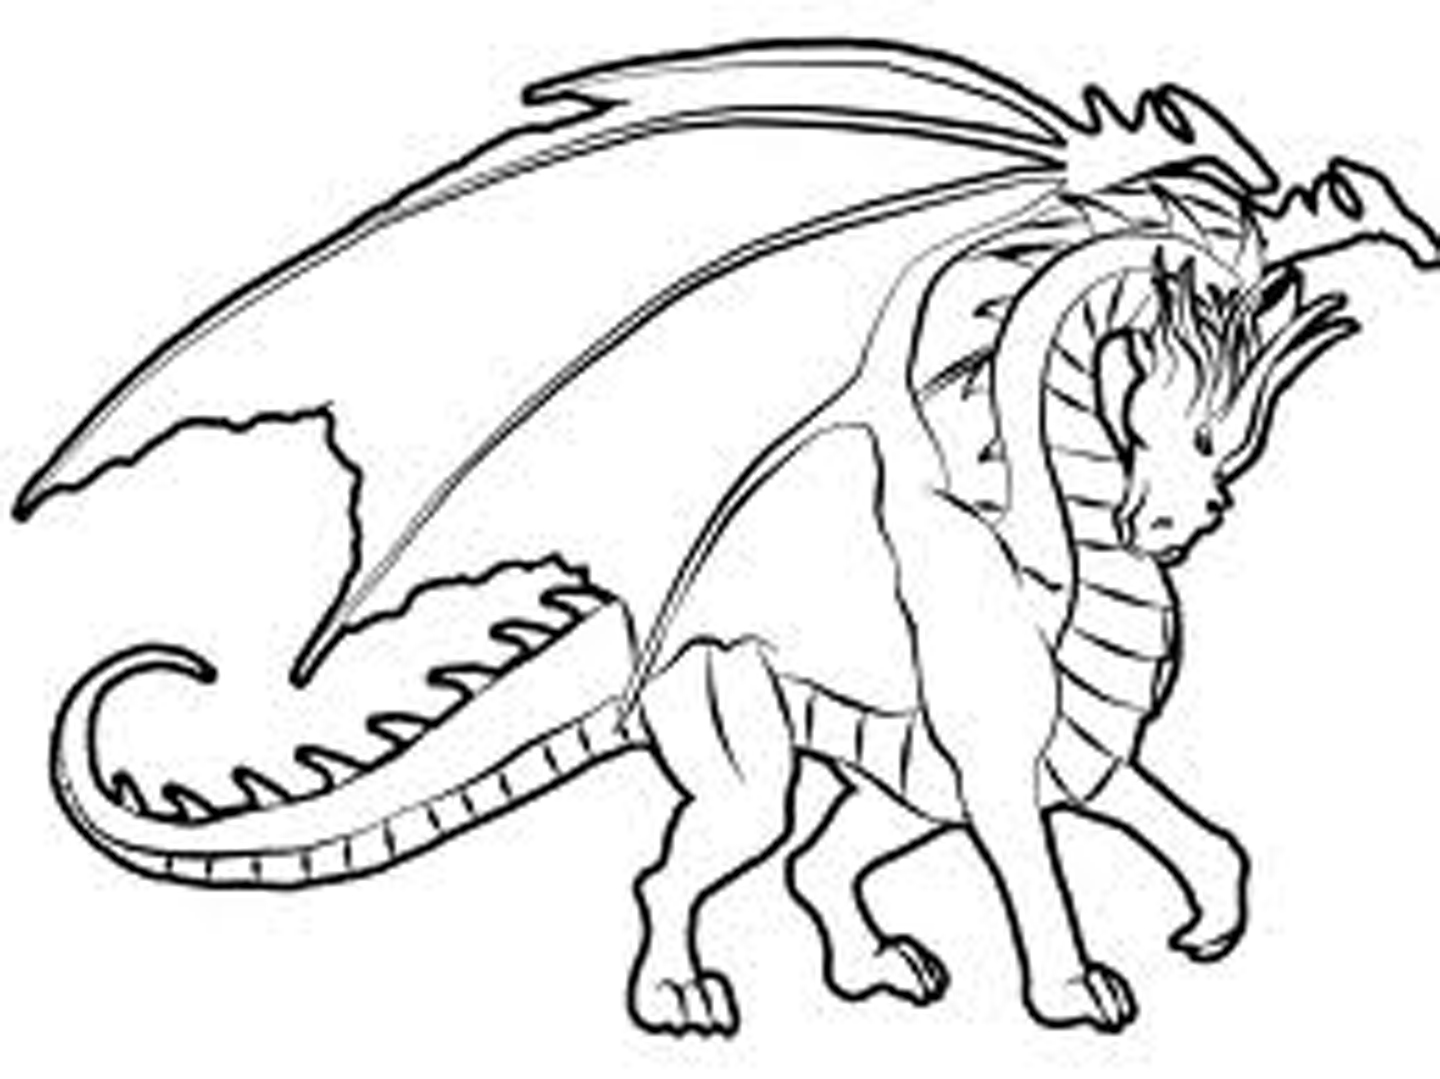 1440x1079 Enjoyable Inspiration Free Coloring Pages For Kids Good Color